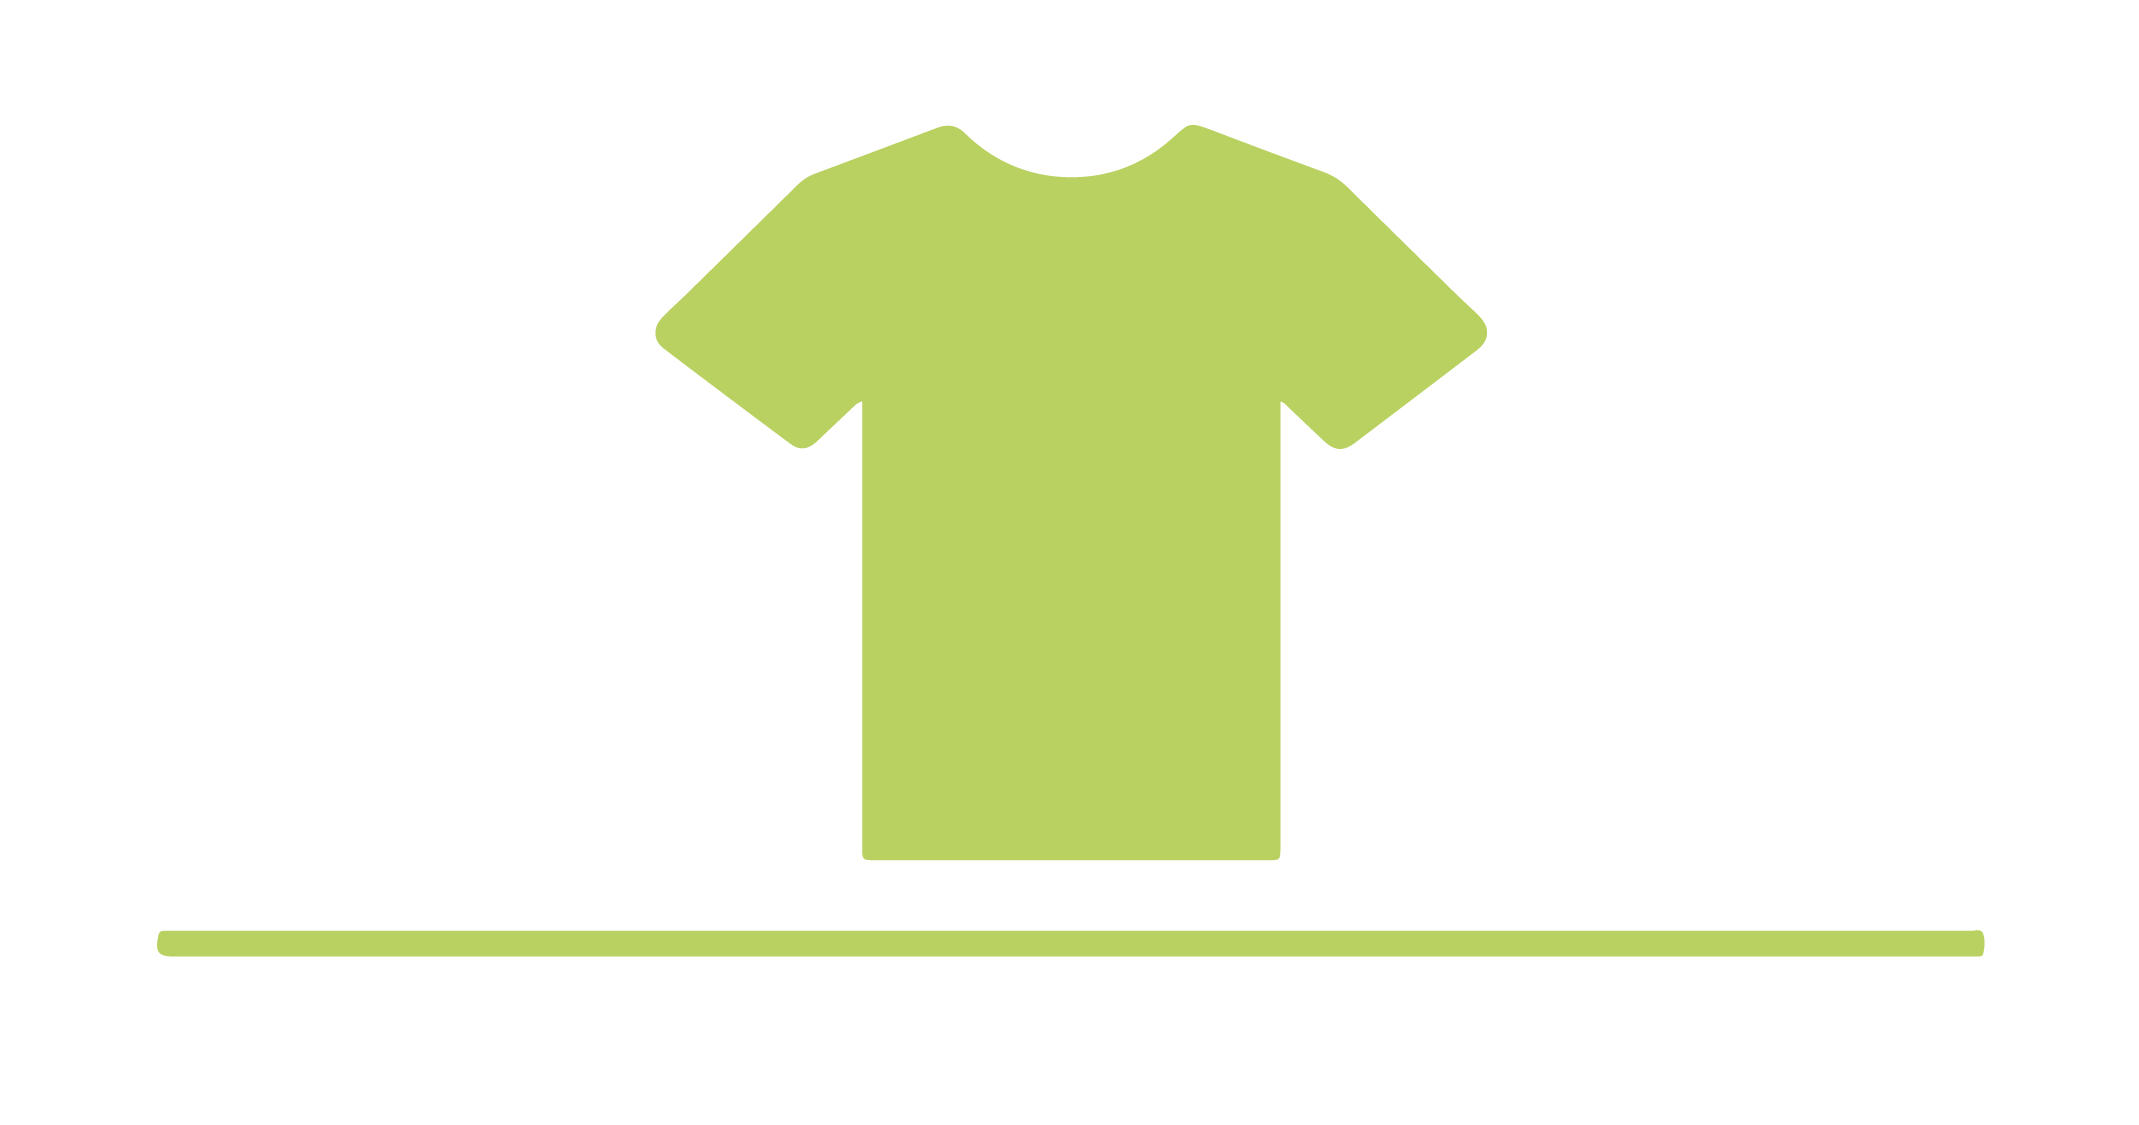 Illustration of a green t-shirt.